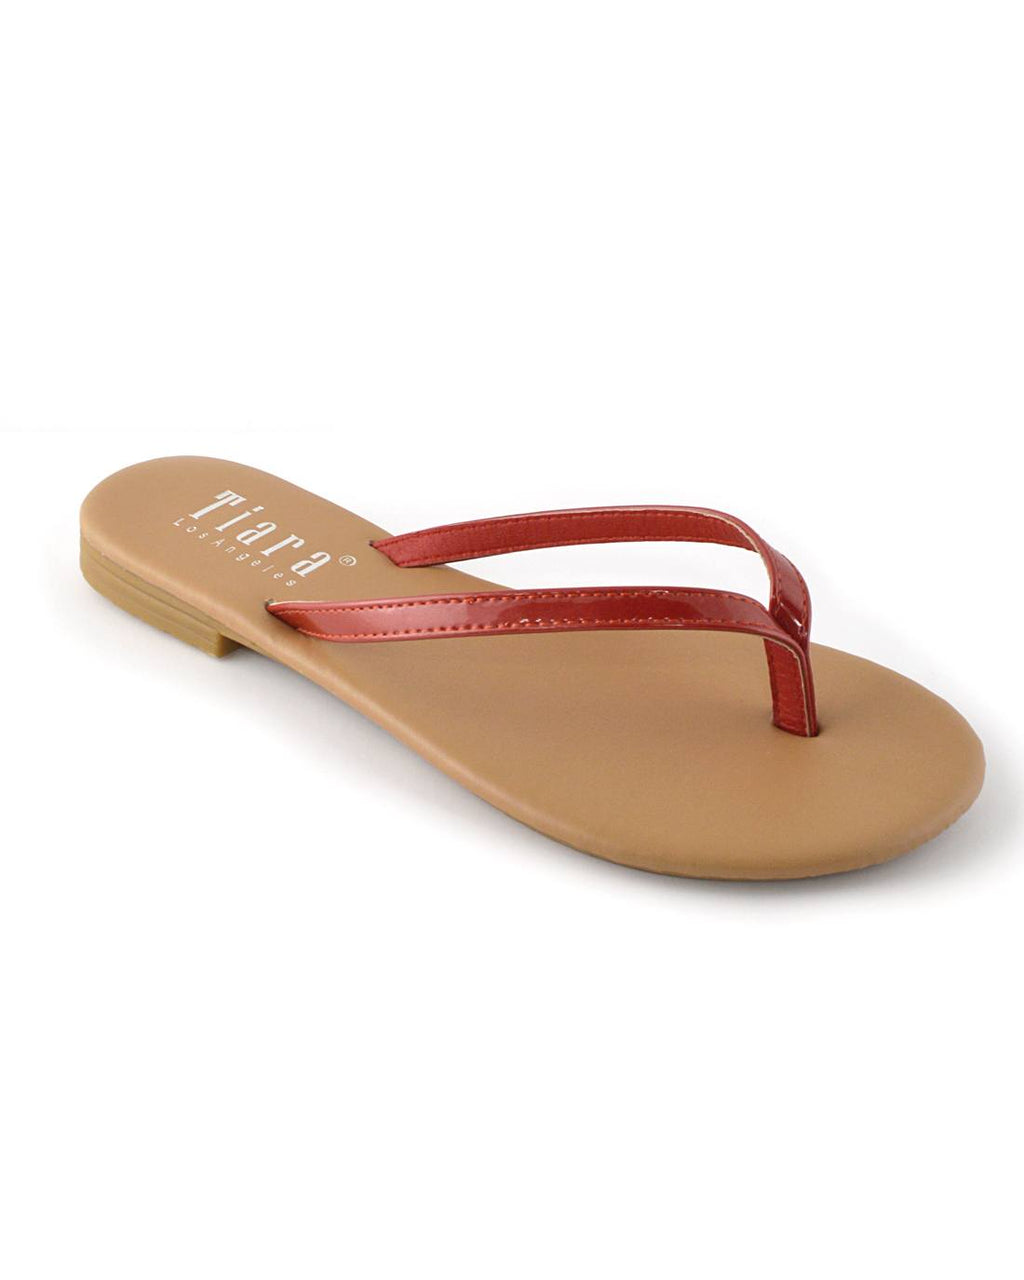 V-Shaped Flat Sandals - Happy-Go-Cart